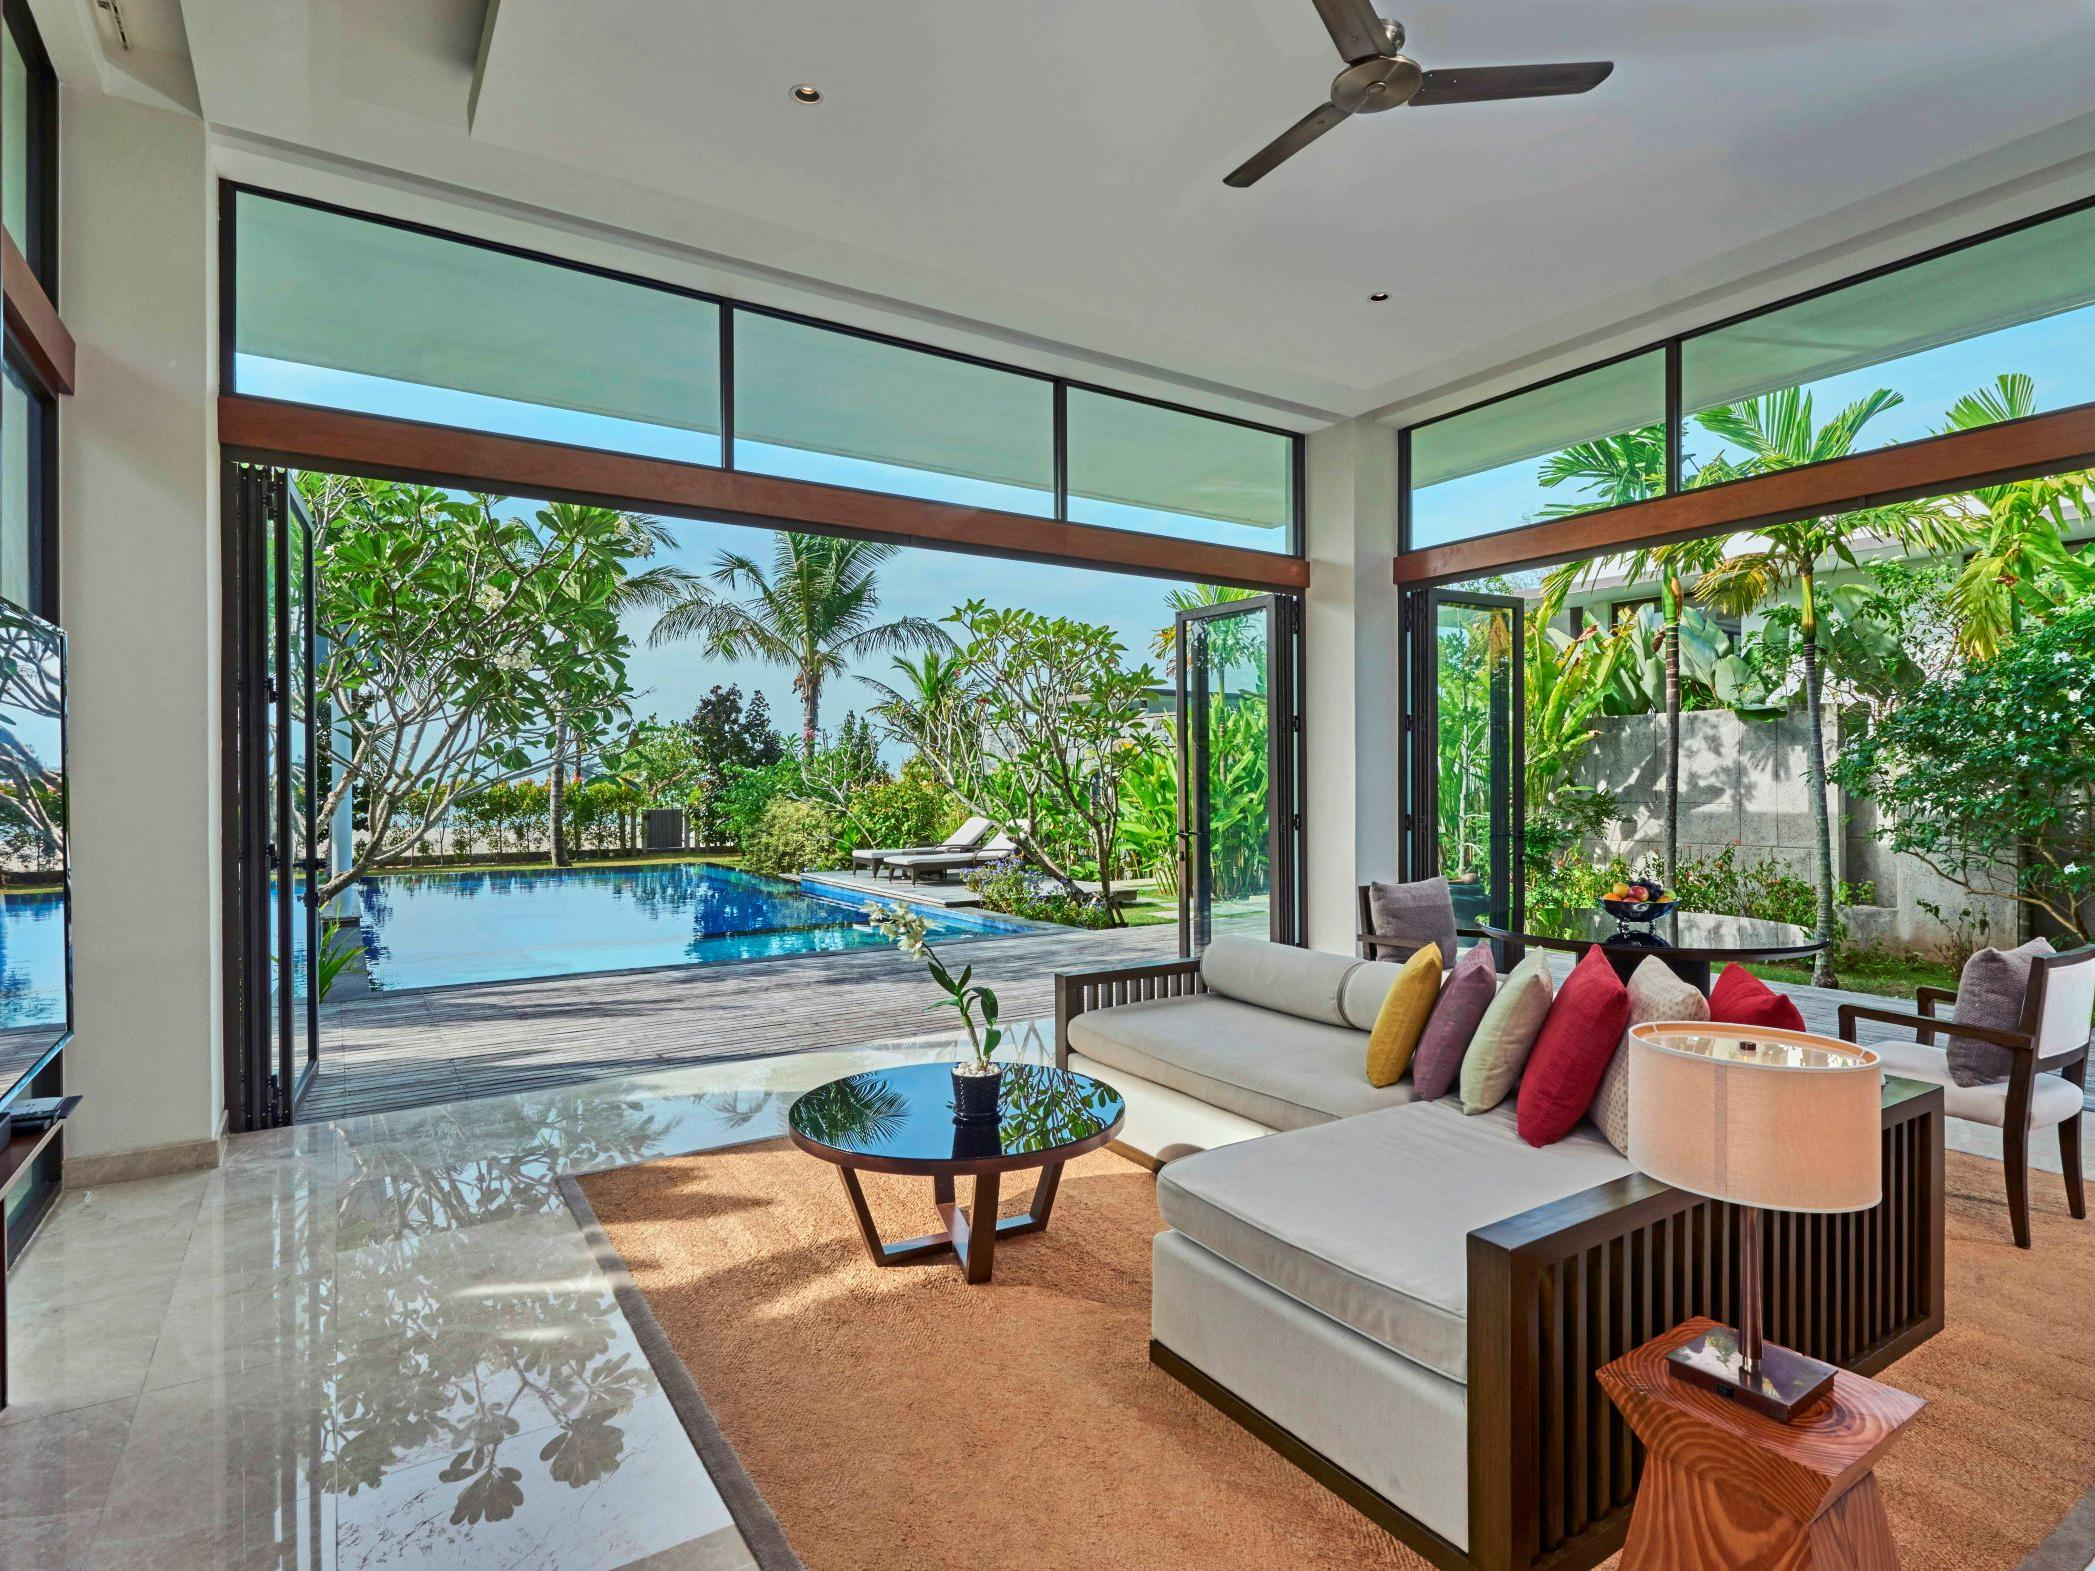 Living room and exterior pool view